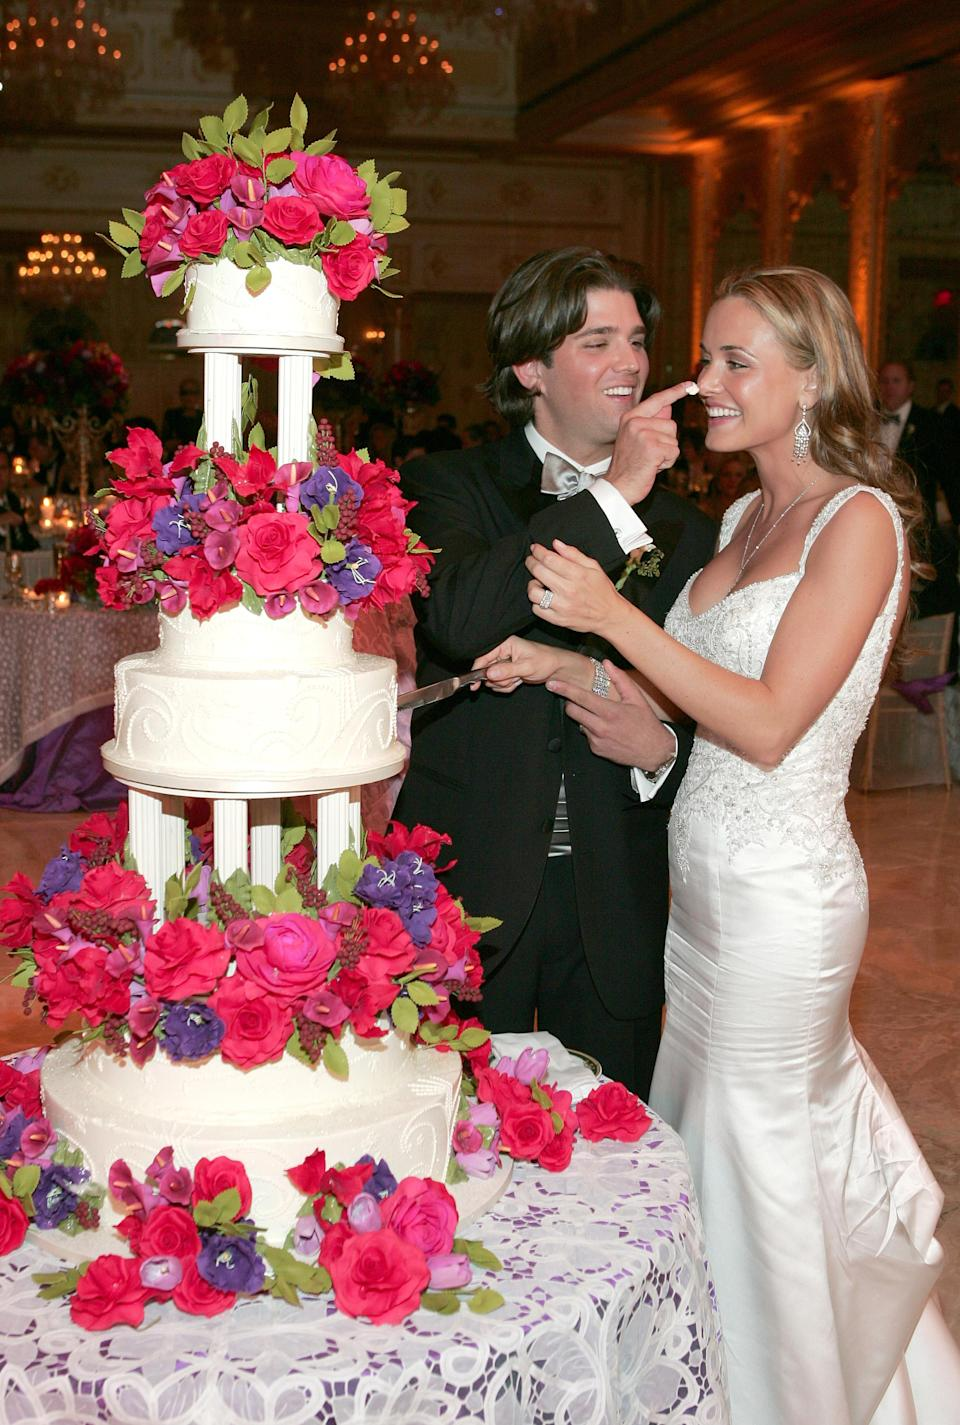 Donald Trump Jr. and Vanessa Trump cut a slice of wedding cake at their wedding reception at Mar-a-Lago in November 2005. (Photo: Michelle McMinn Photography/Getty Images)